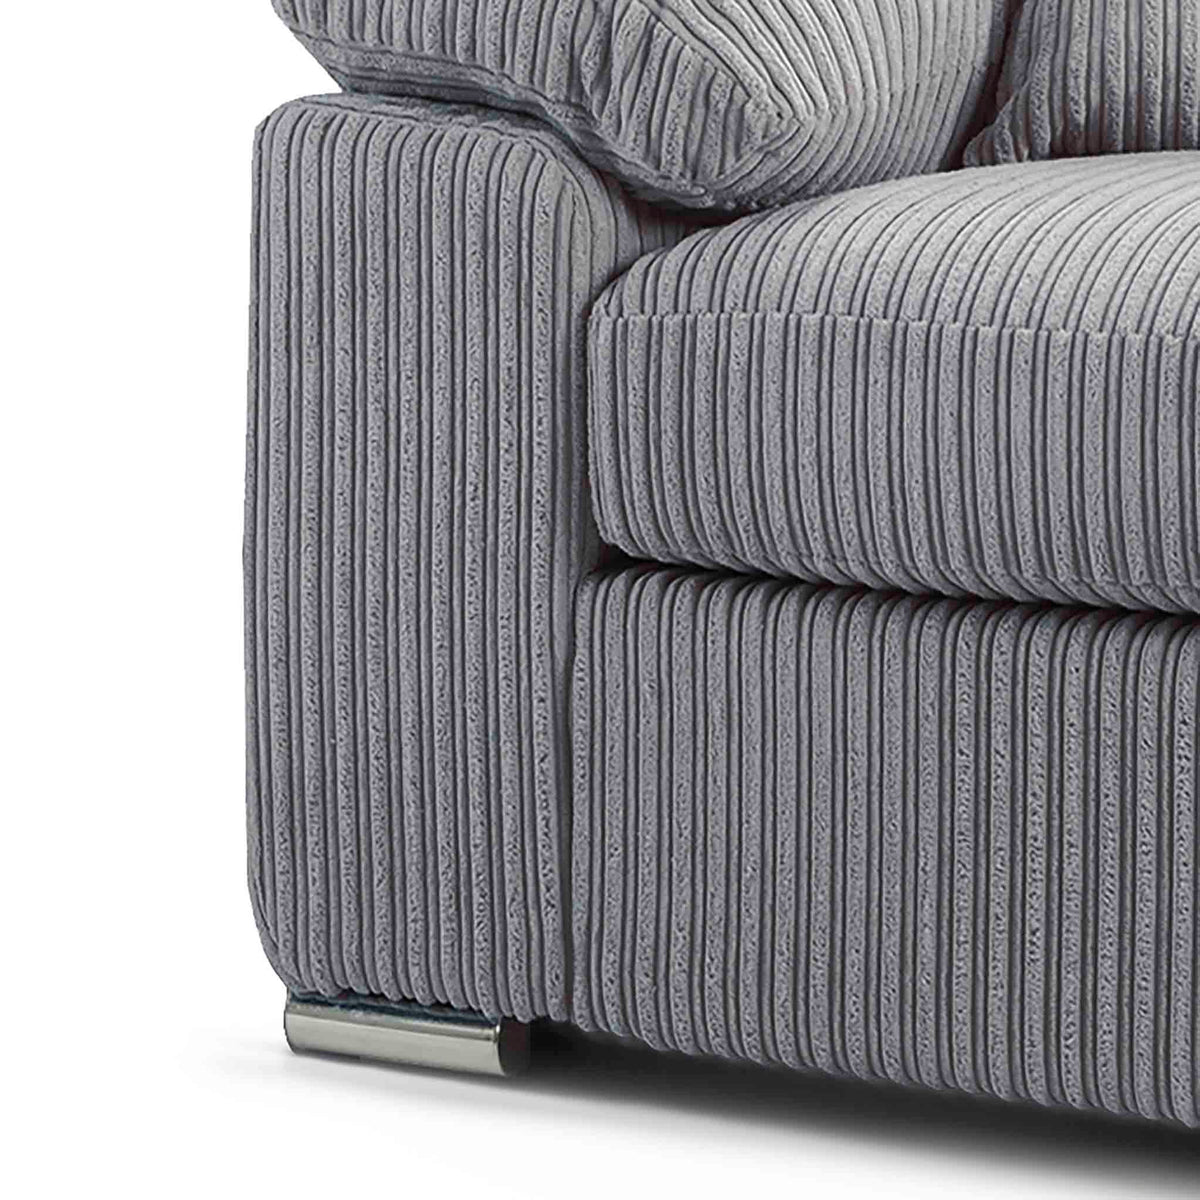 stainless steel feet on the Amalfi Silver 2 Seater Fabric Sofa